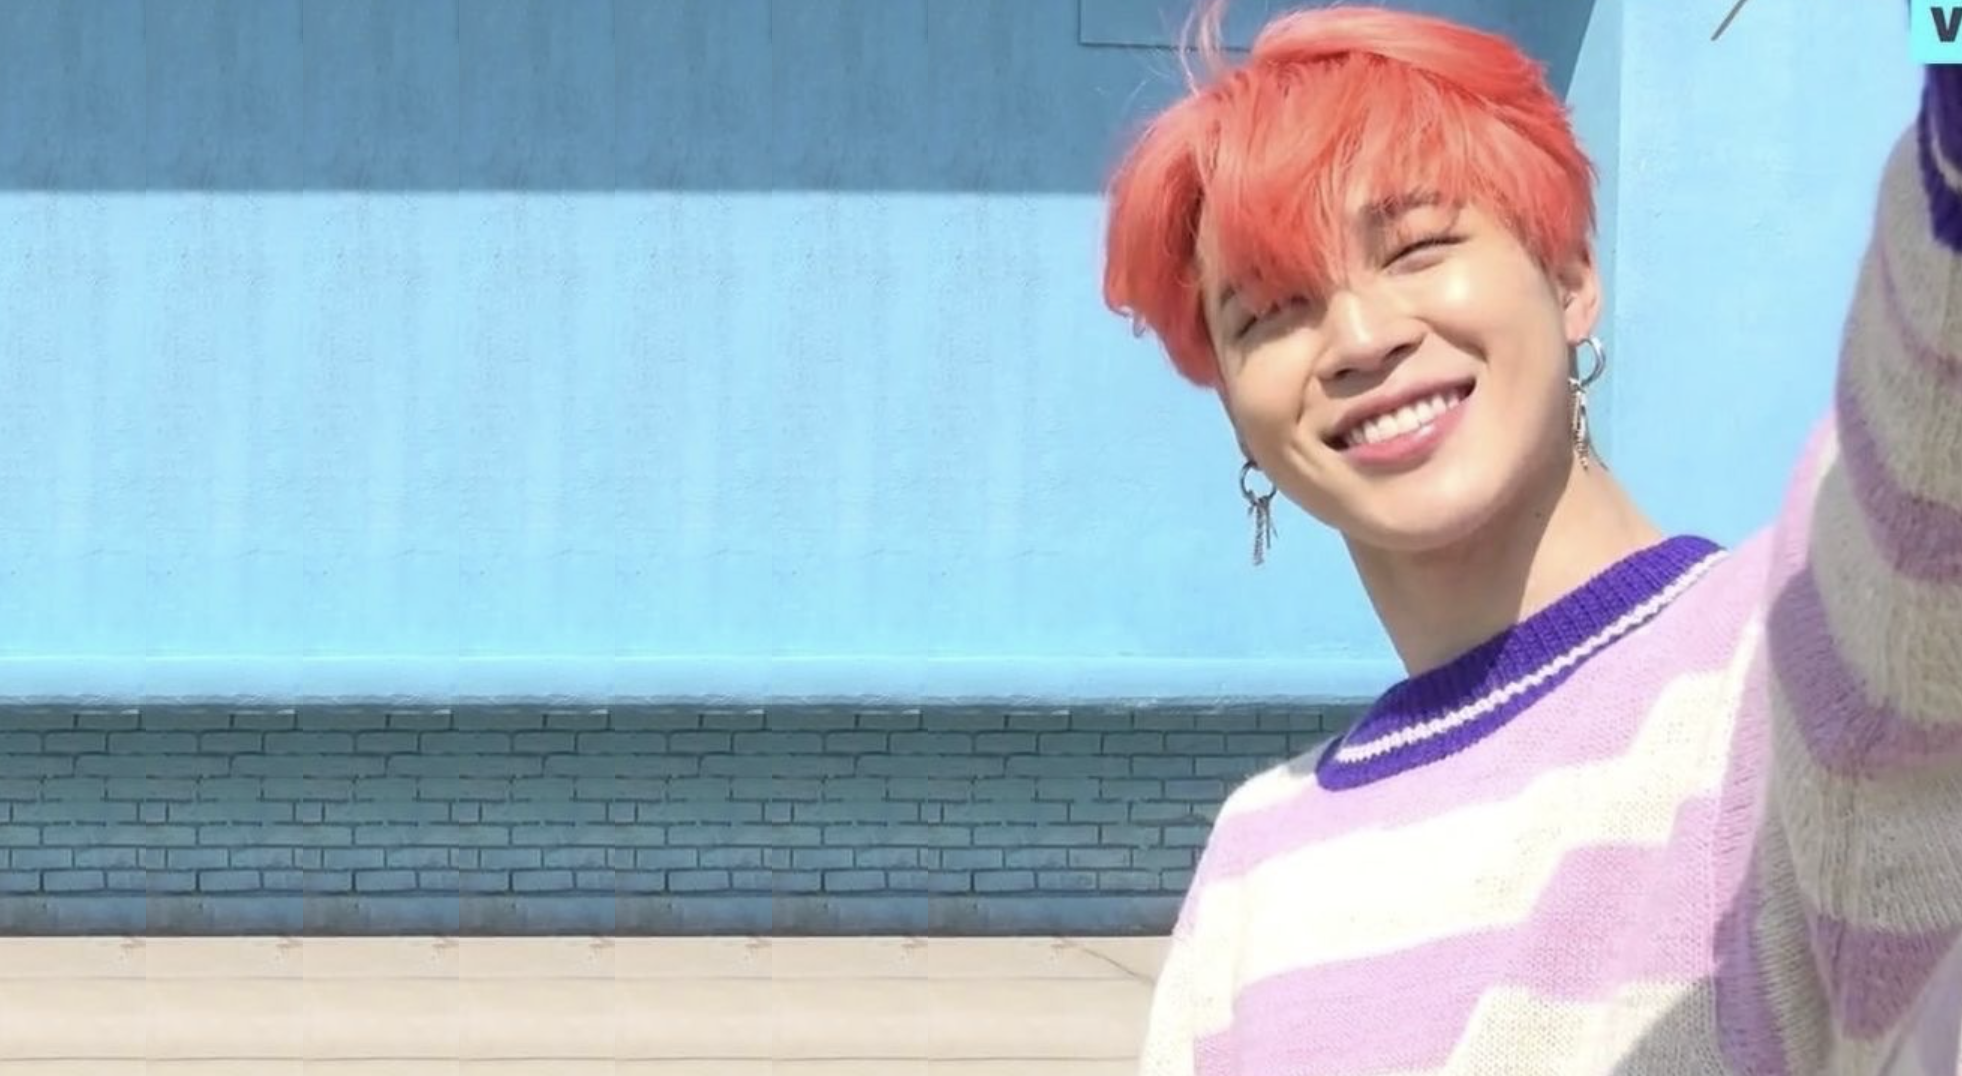 Pin By Dawn Kory On Bts In 2021 Bts Laptop Wallpaper Cute Desktop Wallpaper Jimin Wallpaper